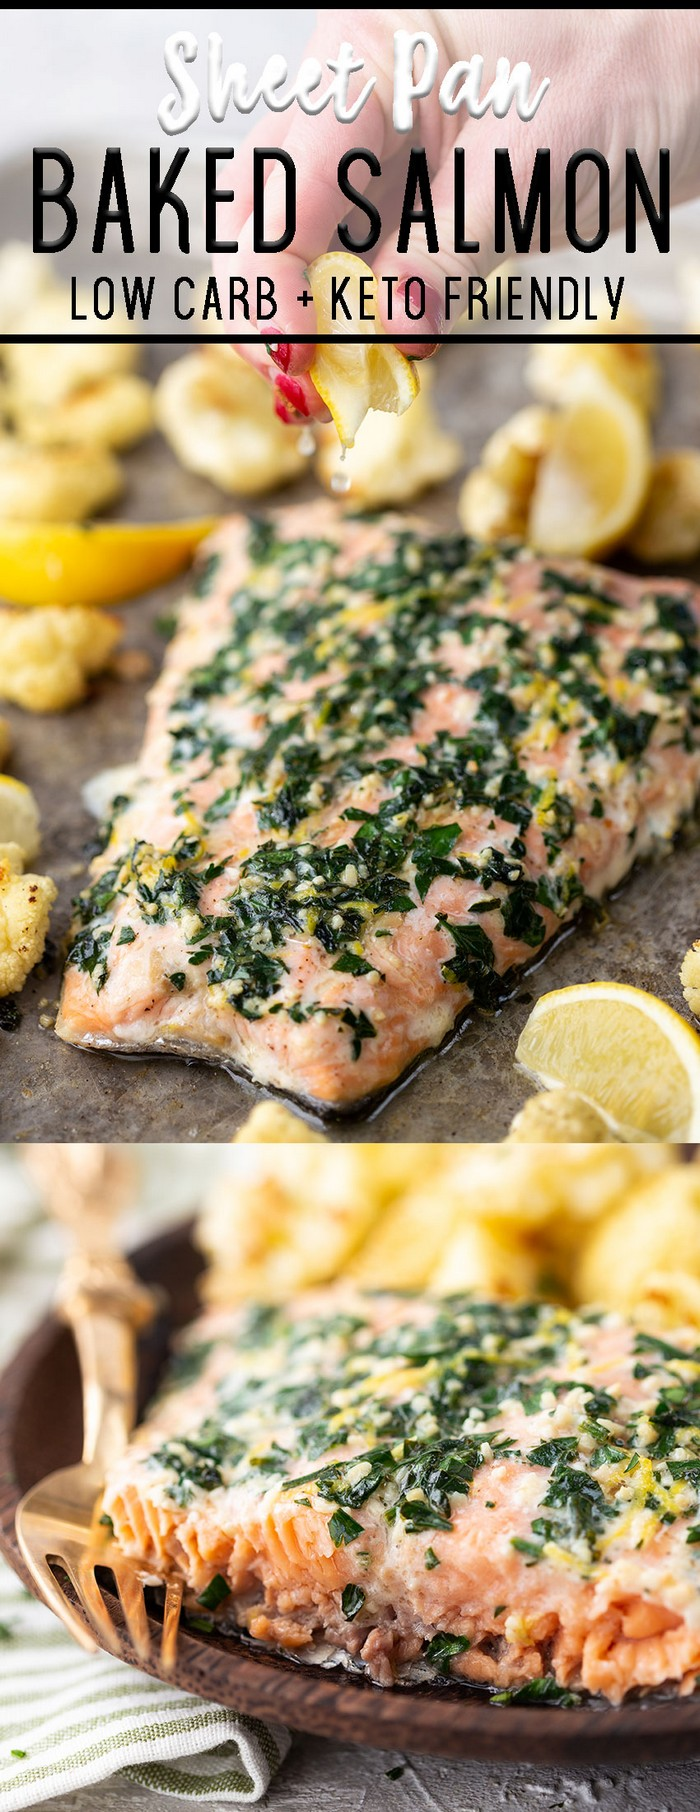 Sheet Pan Baked Salmon